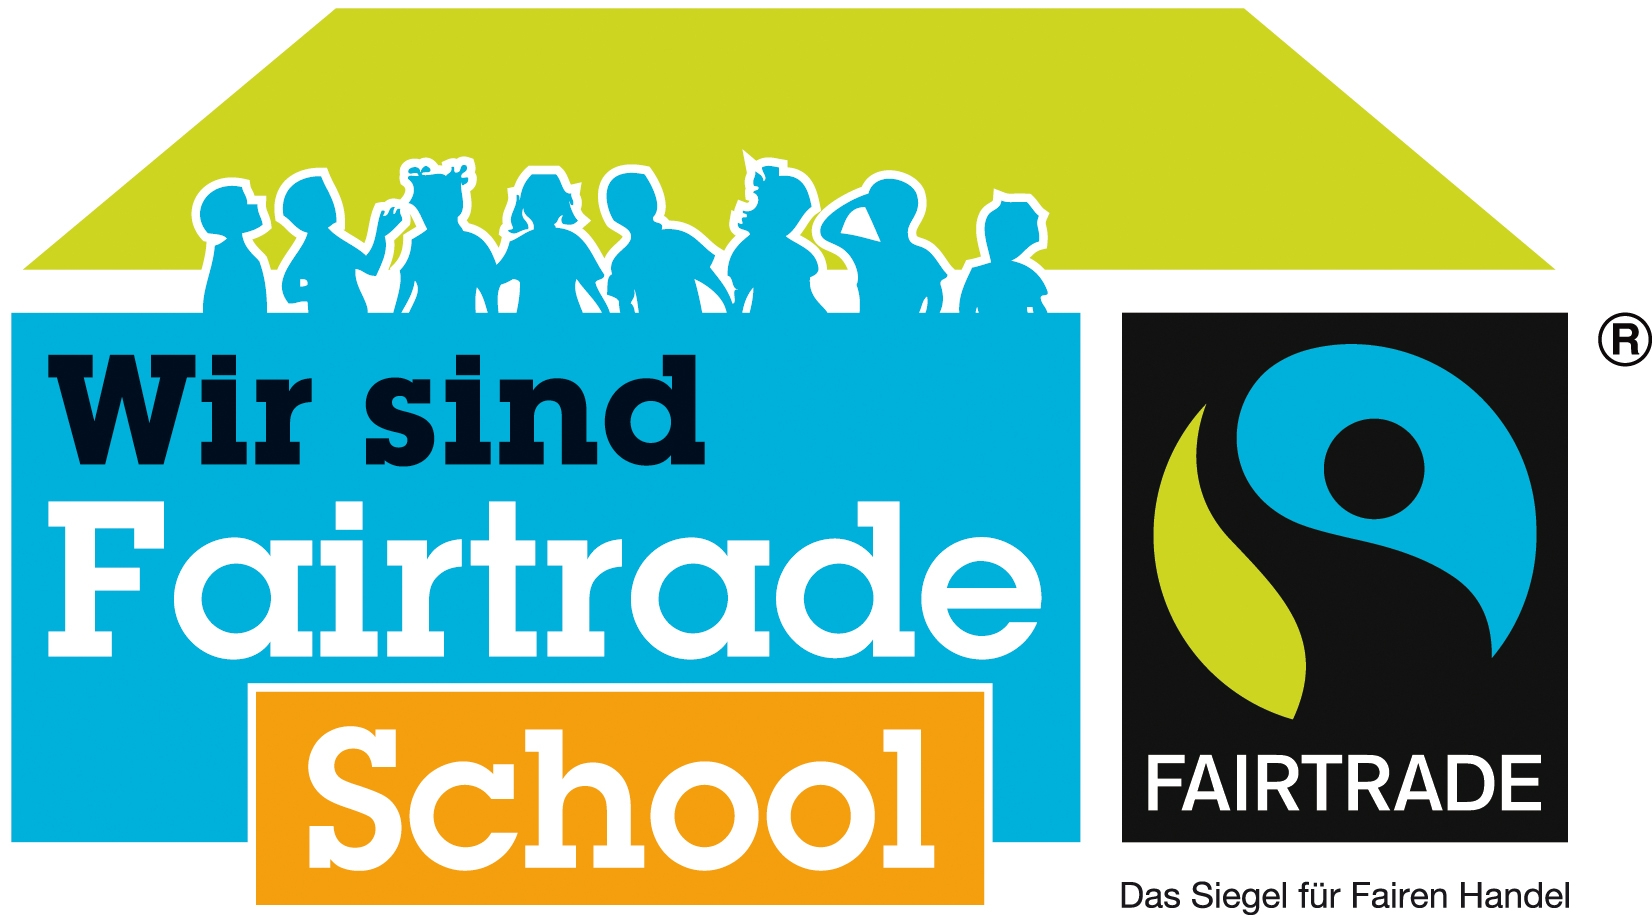 WirsindFairtradeSchool.jpg